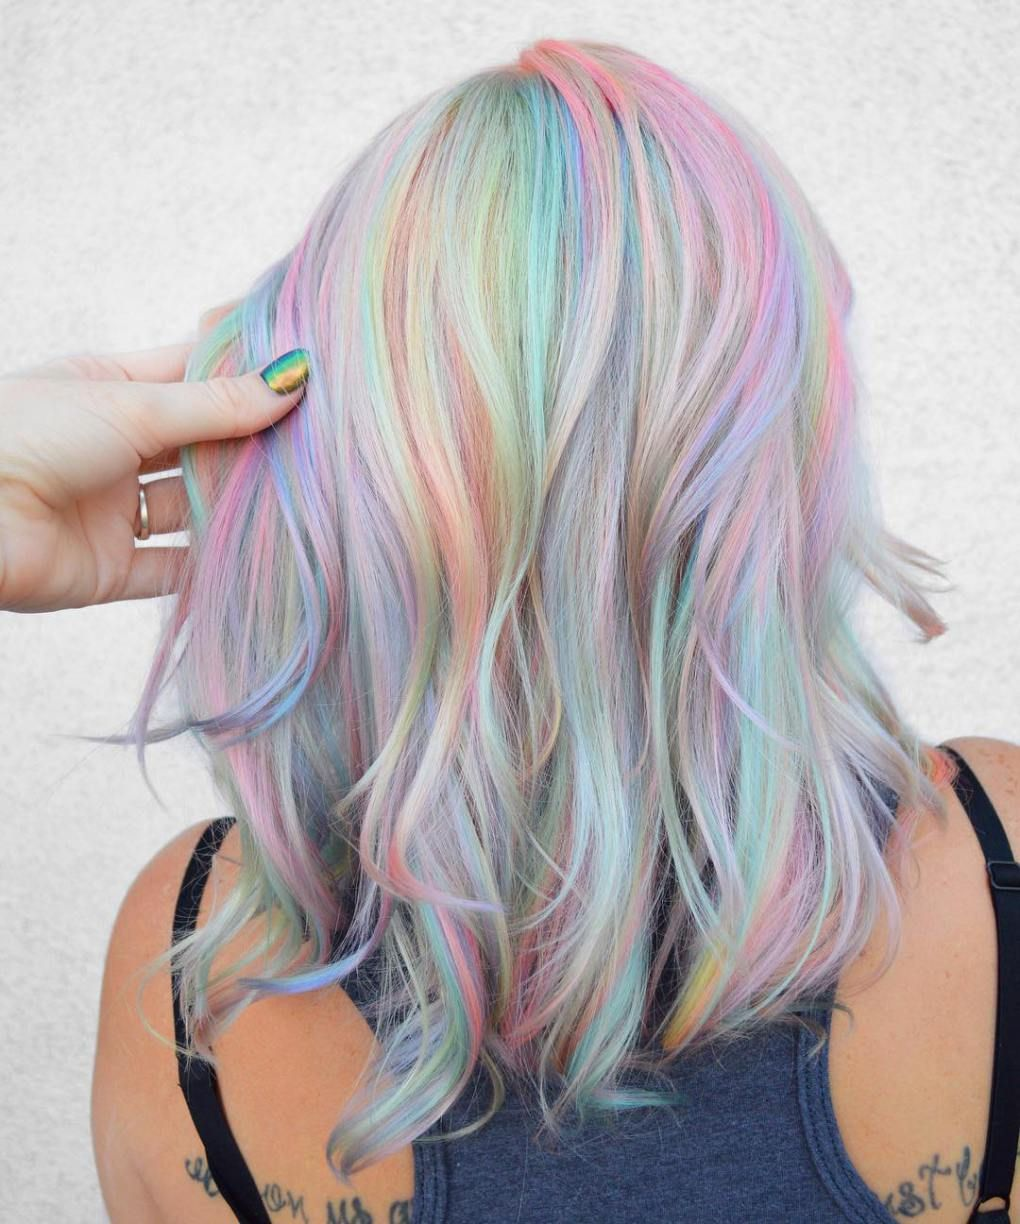 Holographic Hair Takes the Art of Self-Expression over the Rainbow ...